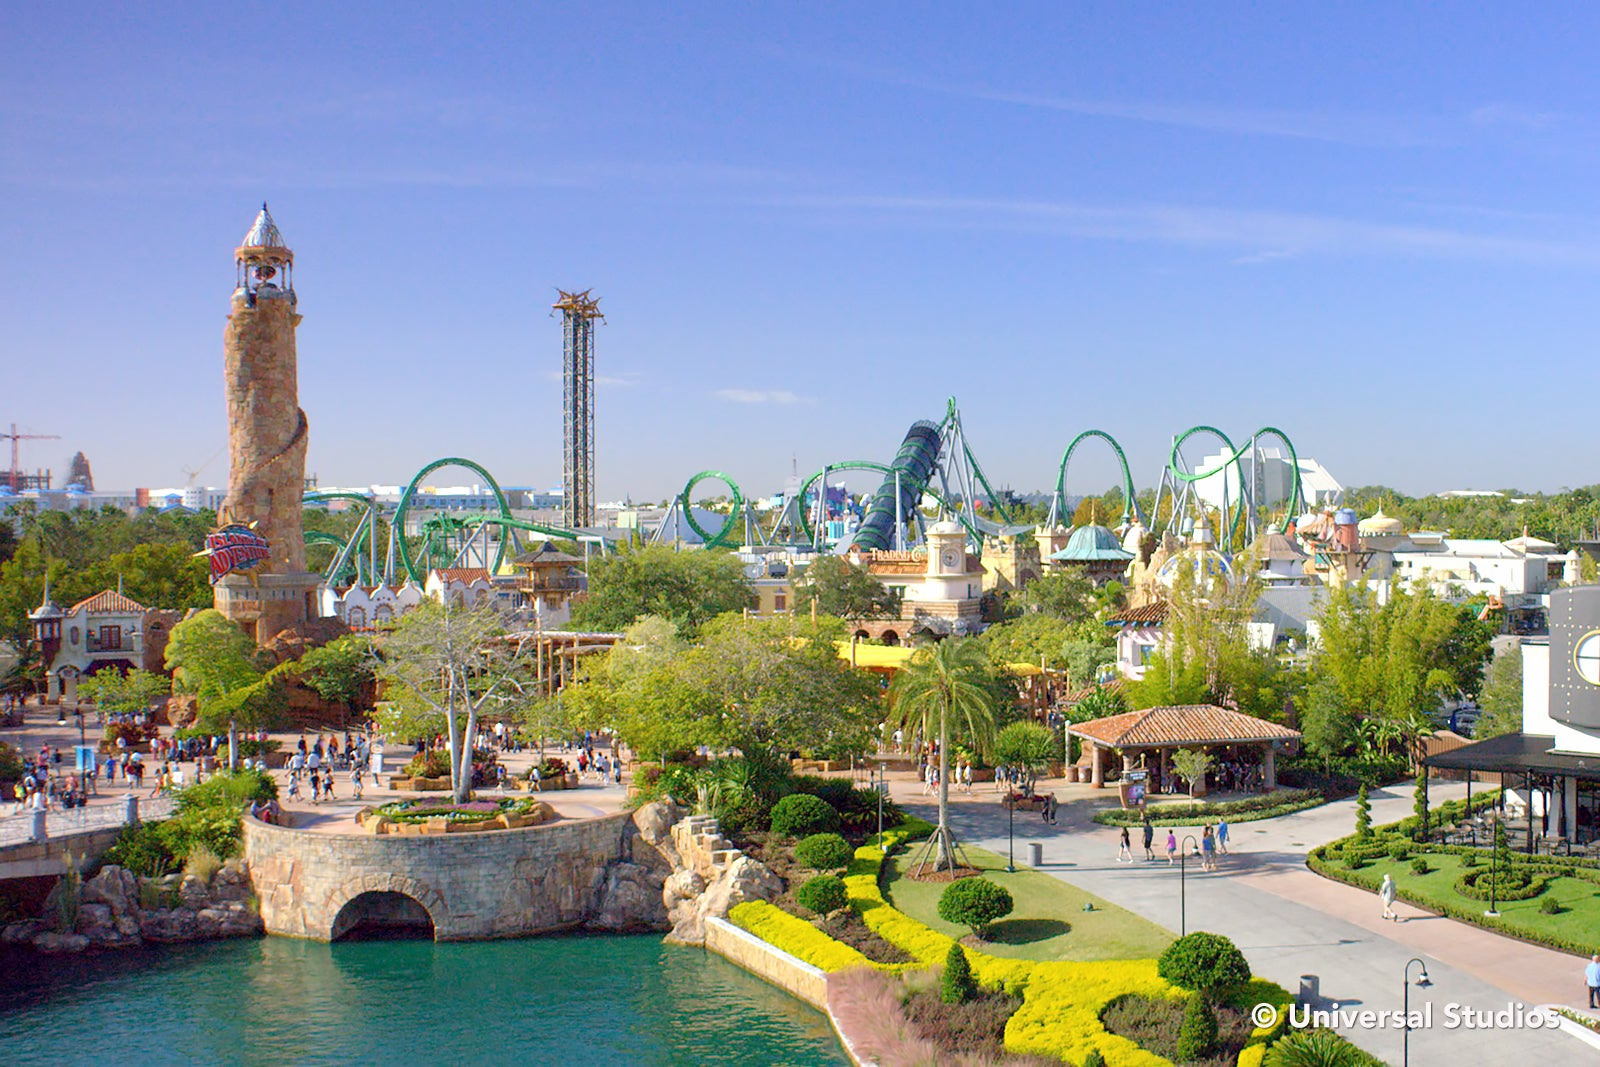 61 Best Things to Do in Orlando - What is Orlando Most ... Downtown Disney Orlando Map on kennedy space center orlando map, disney quest orlando map, universal studios orlando map, epcot map, shopping orlando map, florida citrus bowl parking map, wilderness lodge orlando map, cocoa beach orlando map, millenia mall orlando map, animal kingdom map, fort wilderness orlando map, house of blues orlando map, west side of the world map, arabian nights orlando map, islands of adventure orlando map, original magic kingdom map, disney studios orlando map, hollywood orlando map, boardwalk orlando map,